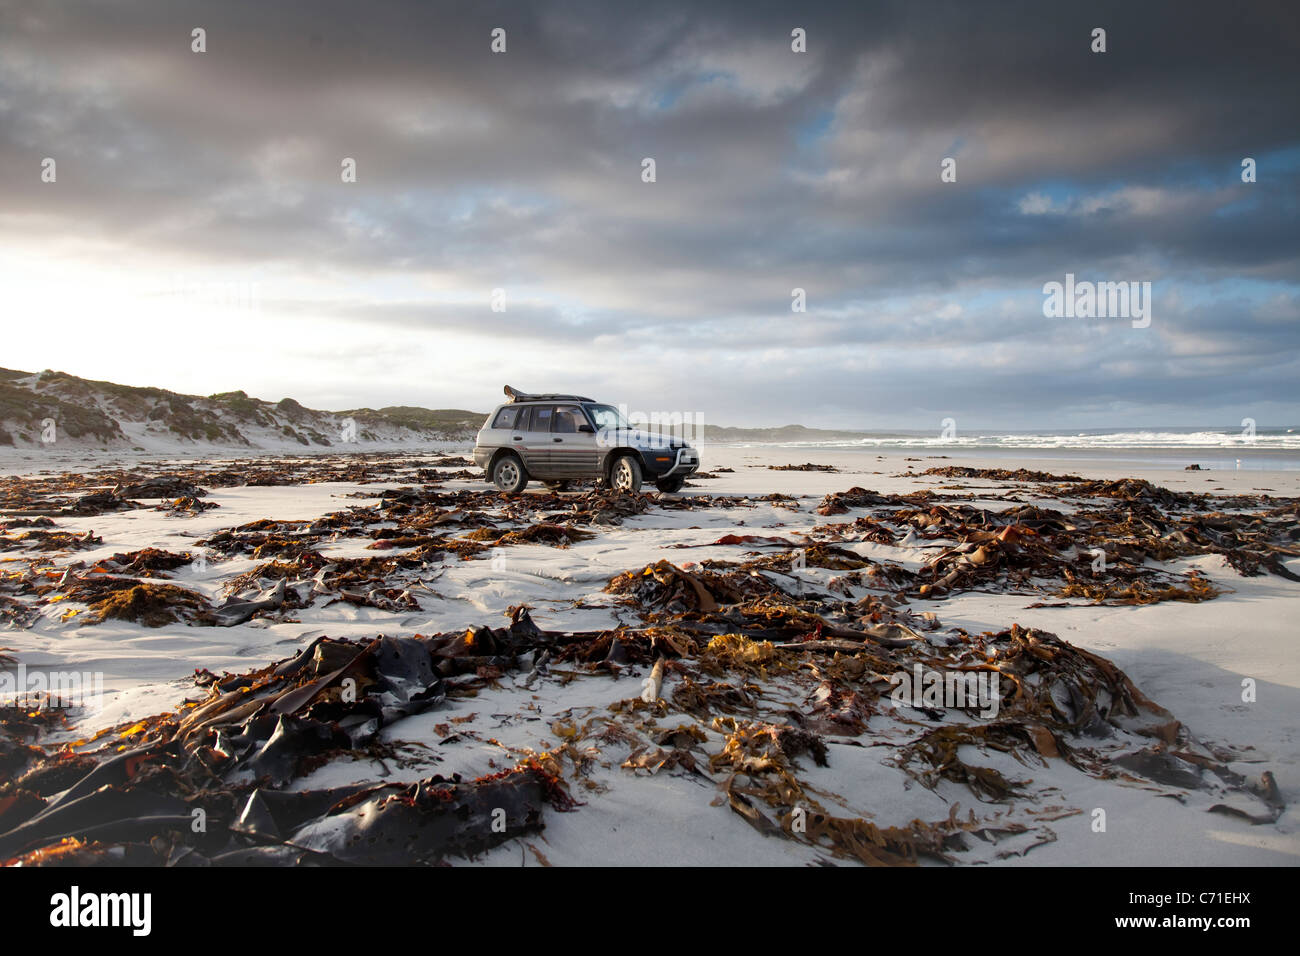 A surfer parked on the beach, getting ready for a surf at British Admiral beach, on King Island, Australia - Stock Image